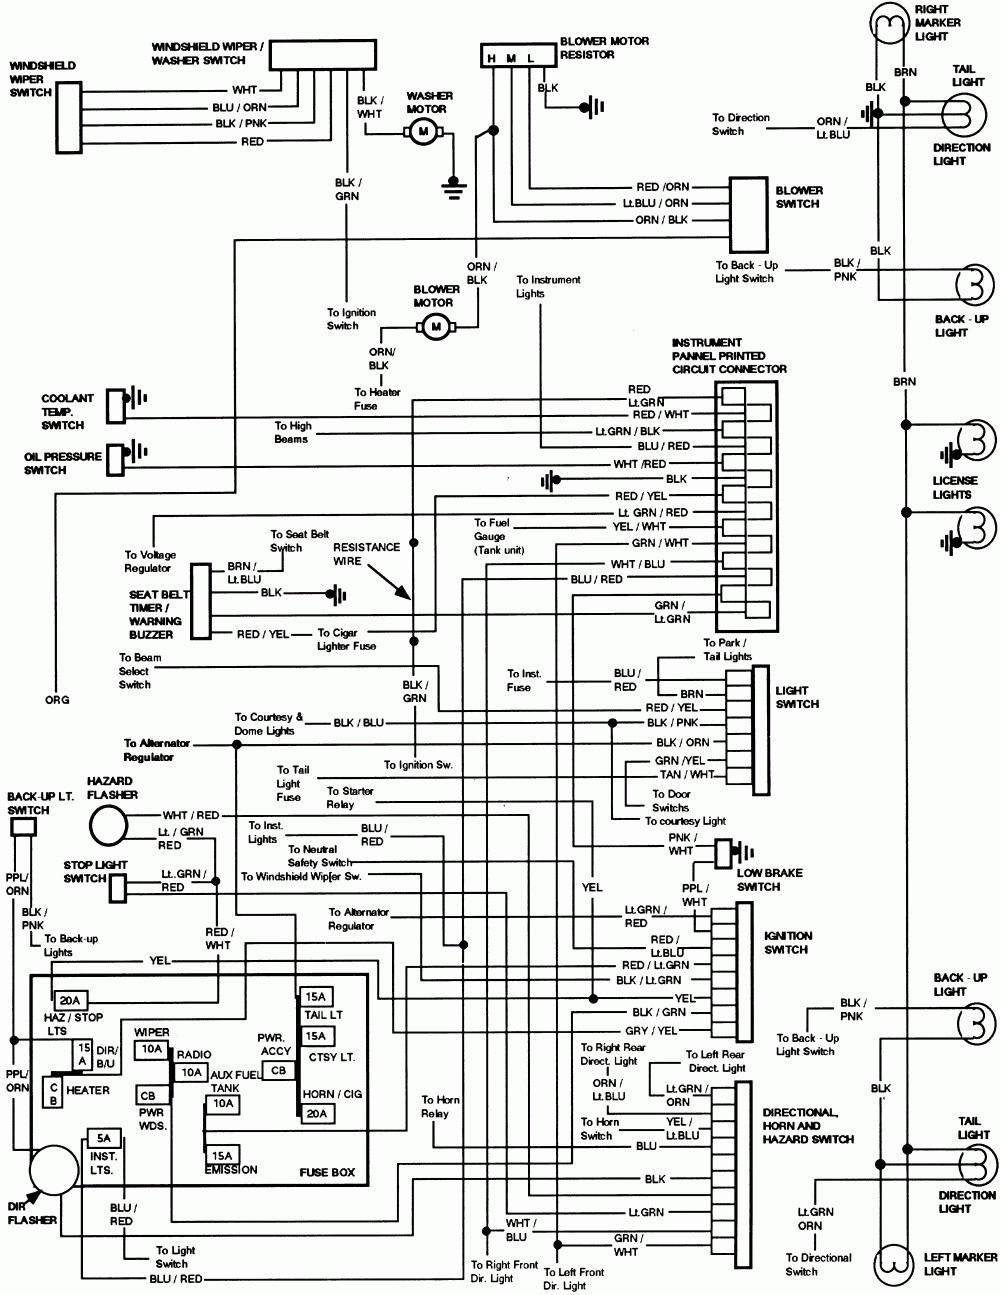 hight resolution of wiring diagrams furthermore 1989 ford f 250 fuel system diagram 1989 ford f150 ignition wiring furthermore ford f 150 fuel pump driver